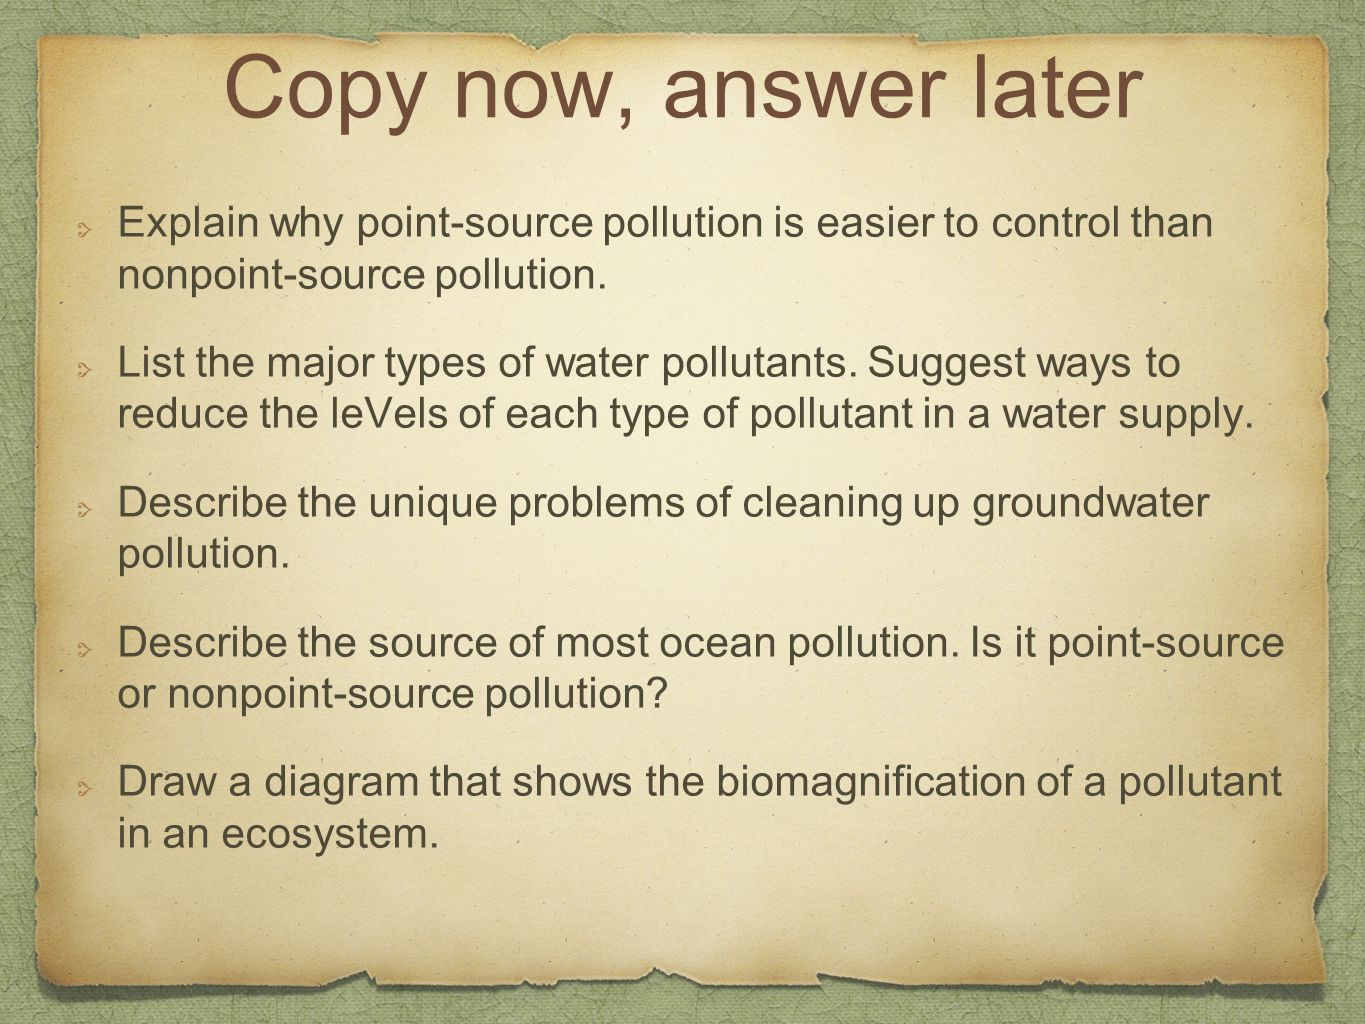 Copy now, answer later Explain why point-source pollution is easier to control than nonpoint-source pollution.